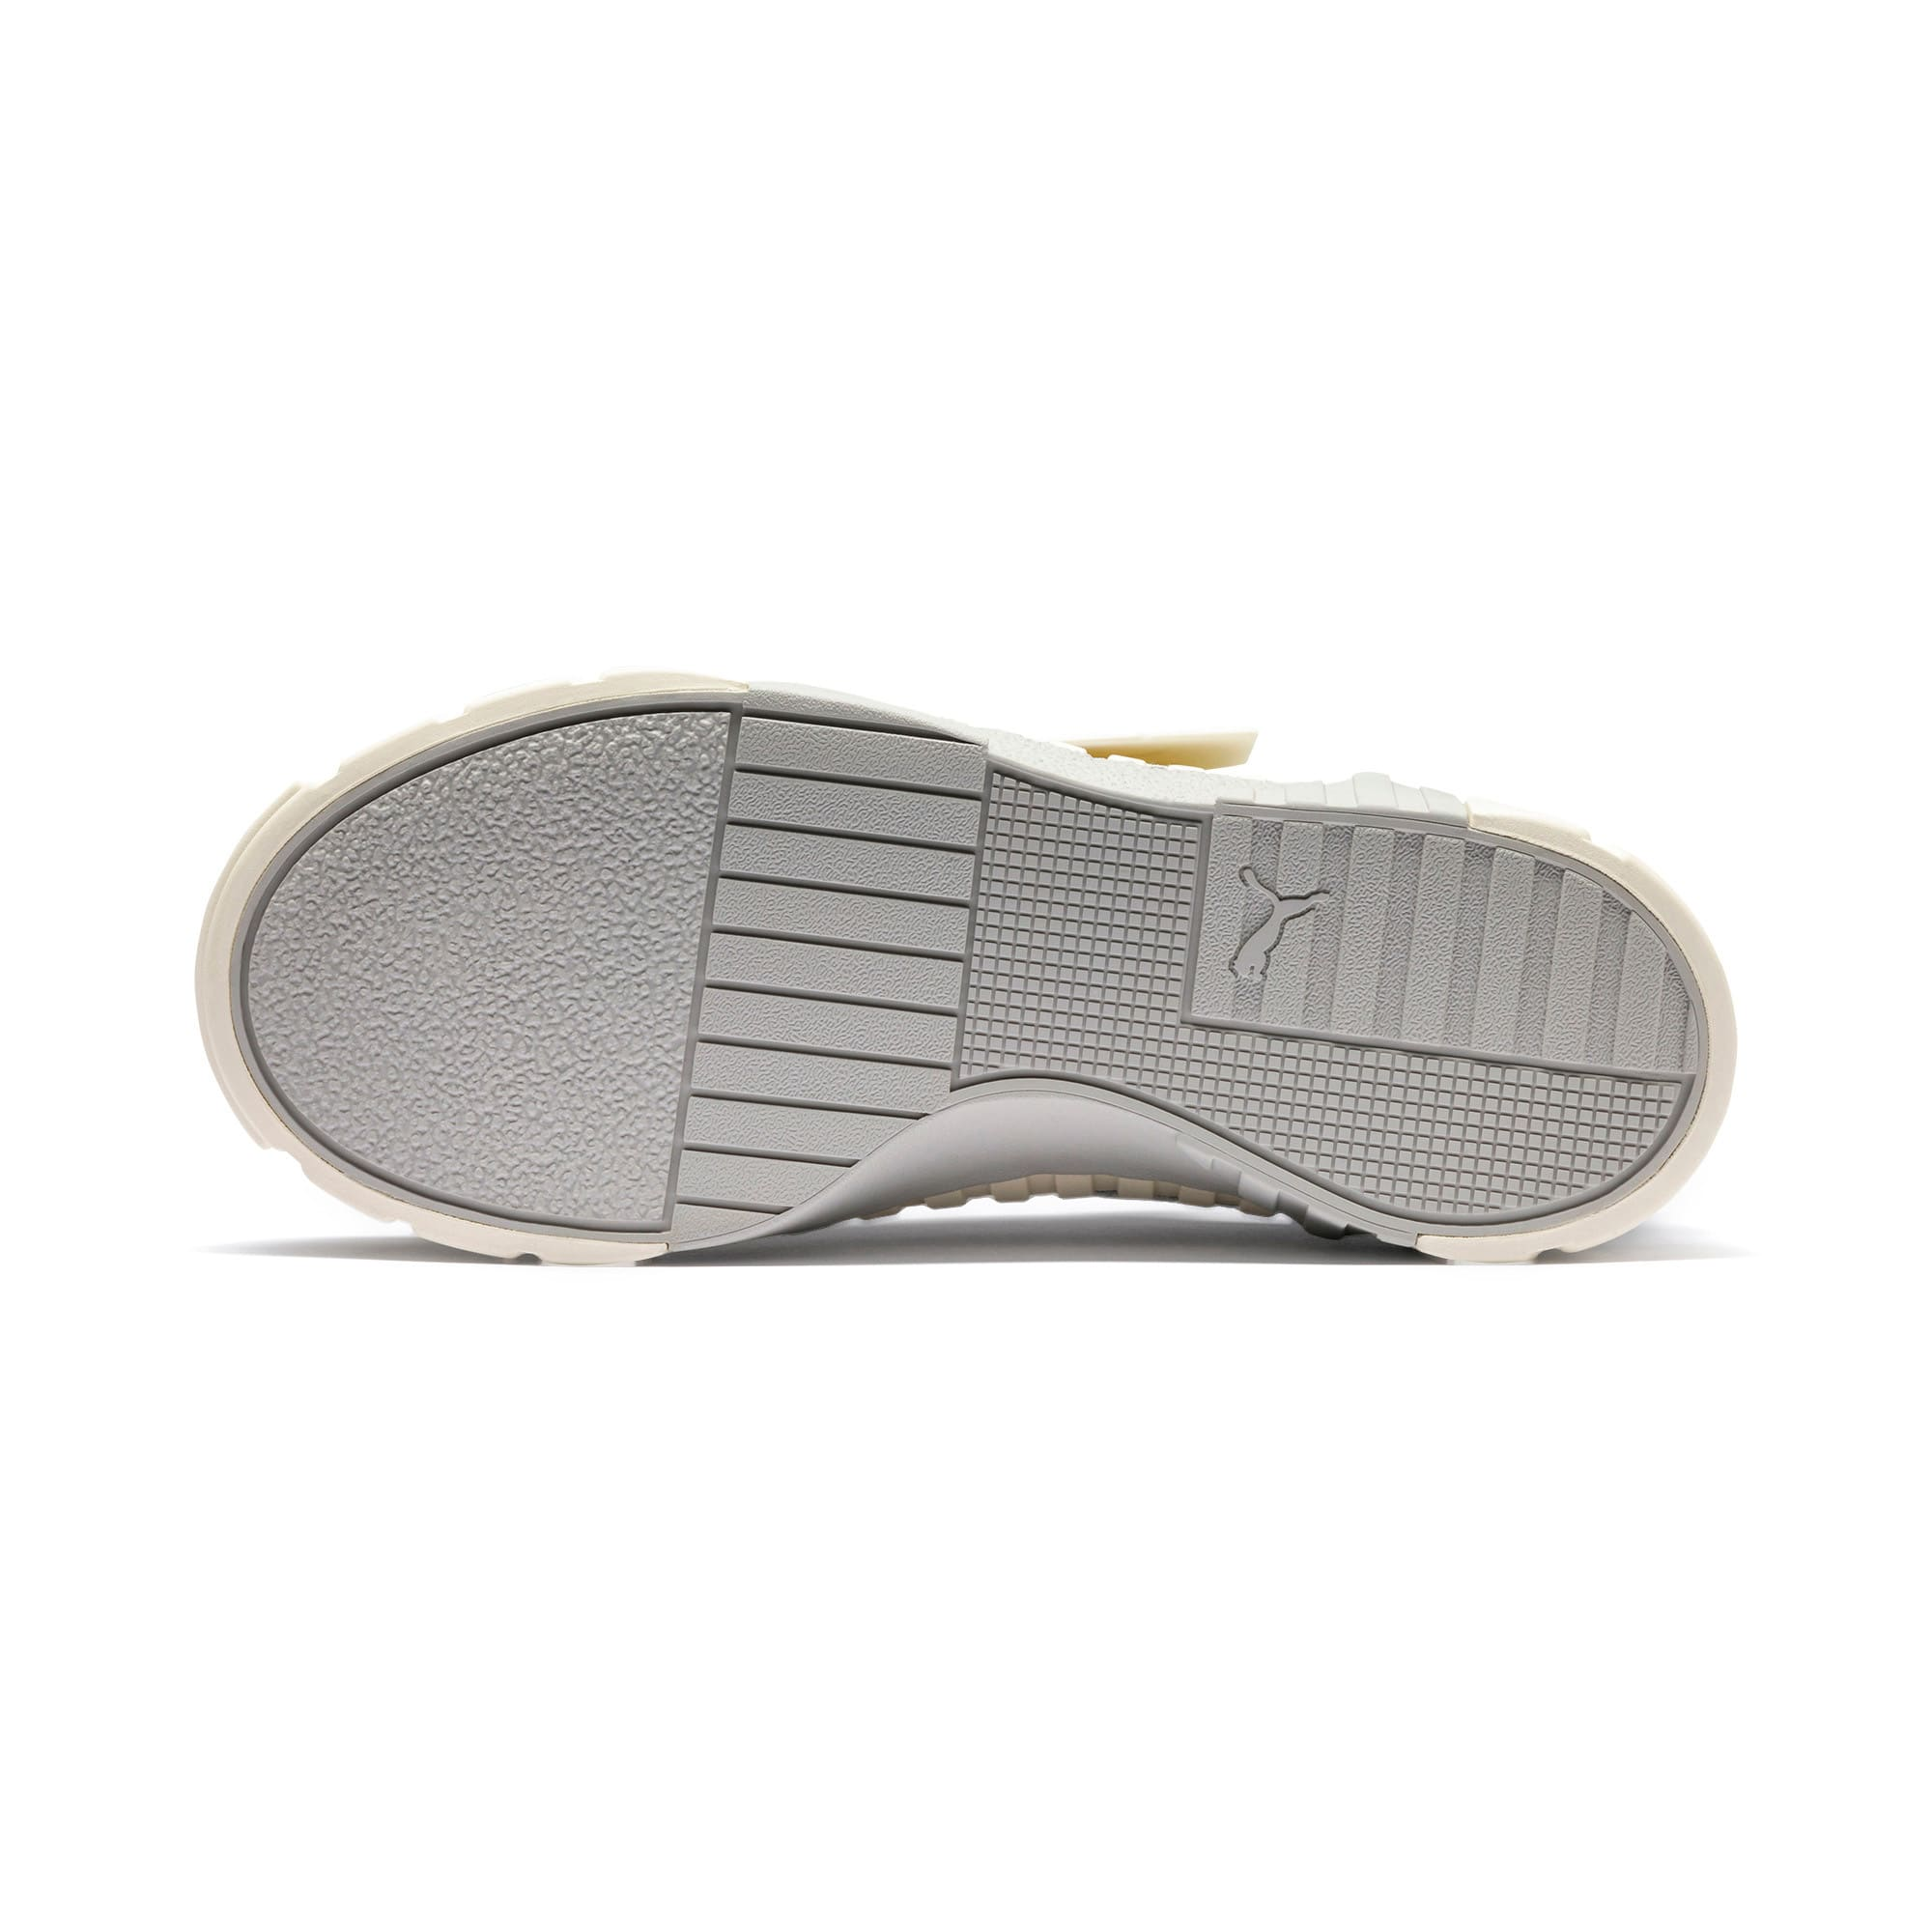 Thumbnail 7 of PUMA x SANKUANZ CALI WOMEN'S, Gray Violet-Whisper White, medium-JPN